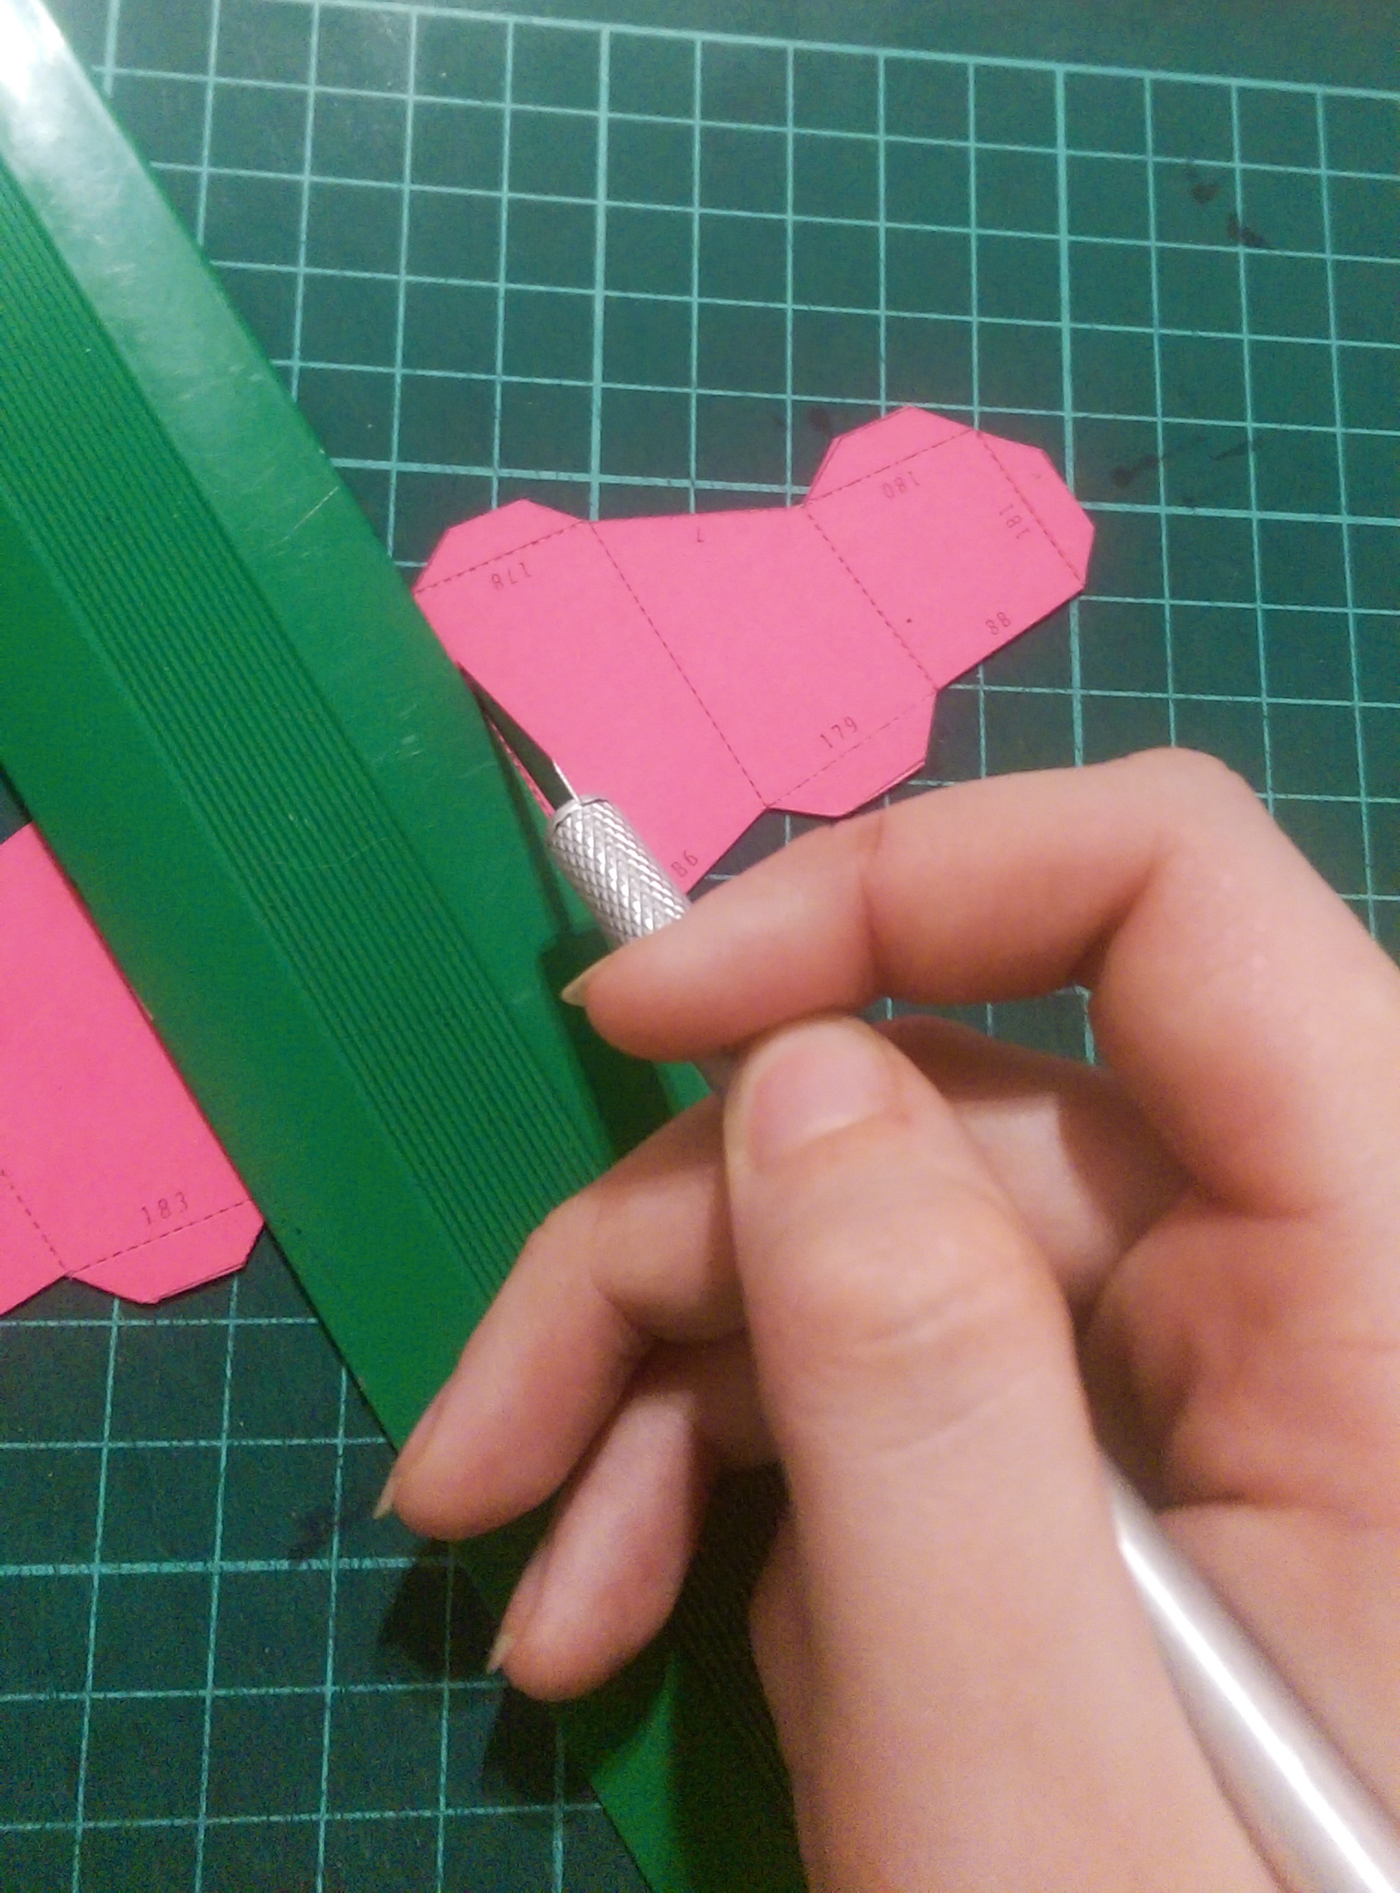 How To Create 3d Paper Sculptures With Your Own Hands On Behance Origami Small Swan Assembly Diagram For Beginner Tutorial